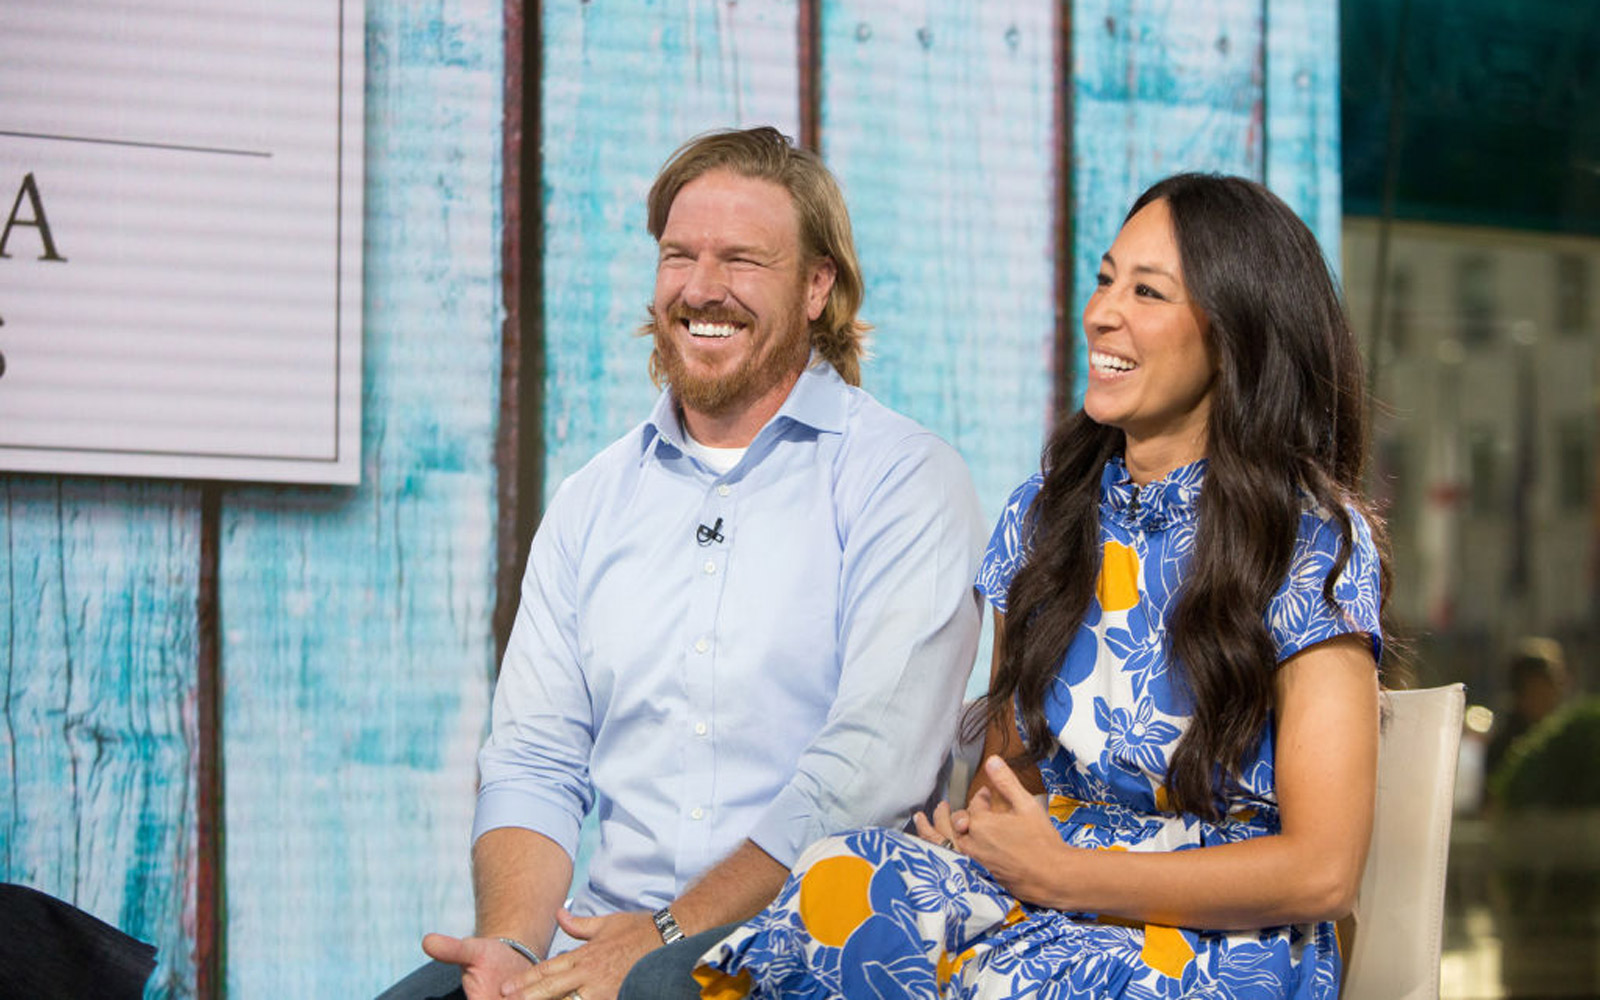 Chip and Joanna Gaines on Today show